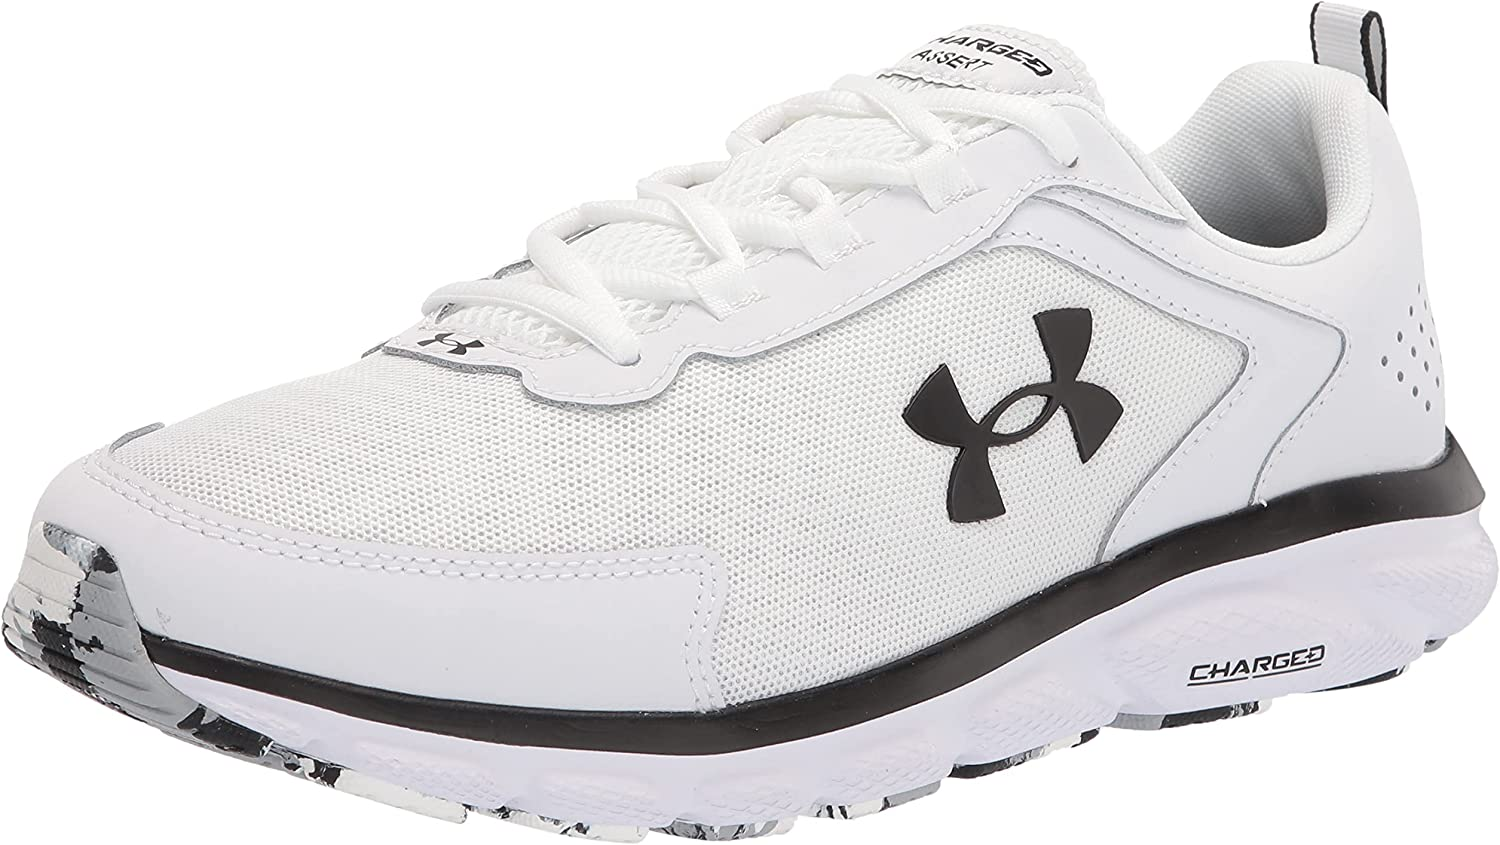 Under Armour Men's Limited price Charged Shoe Assert Running 9 100% quality warranty